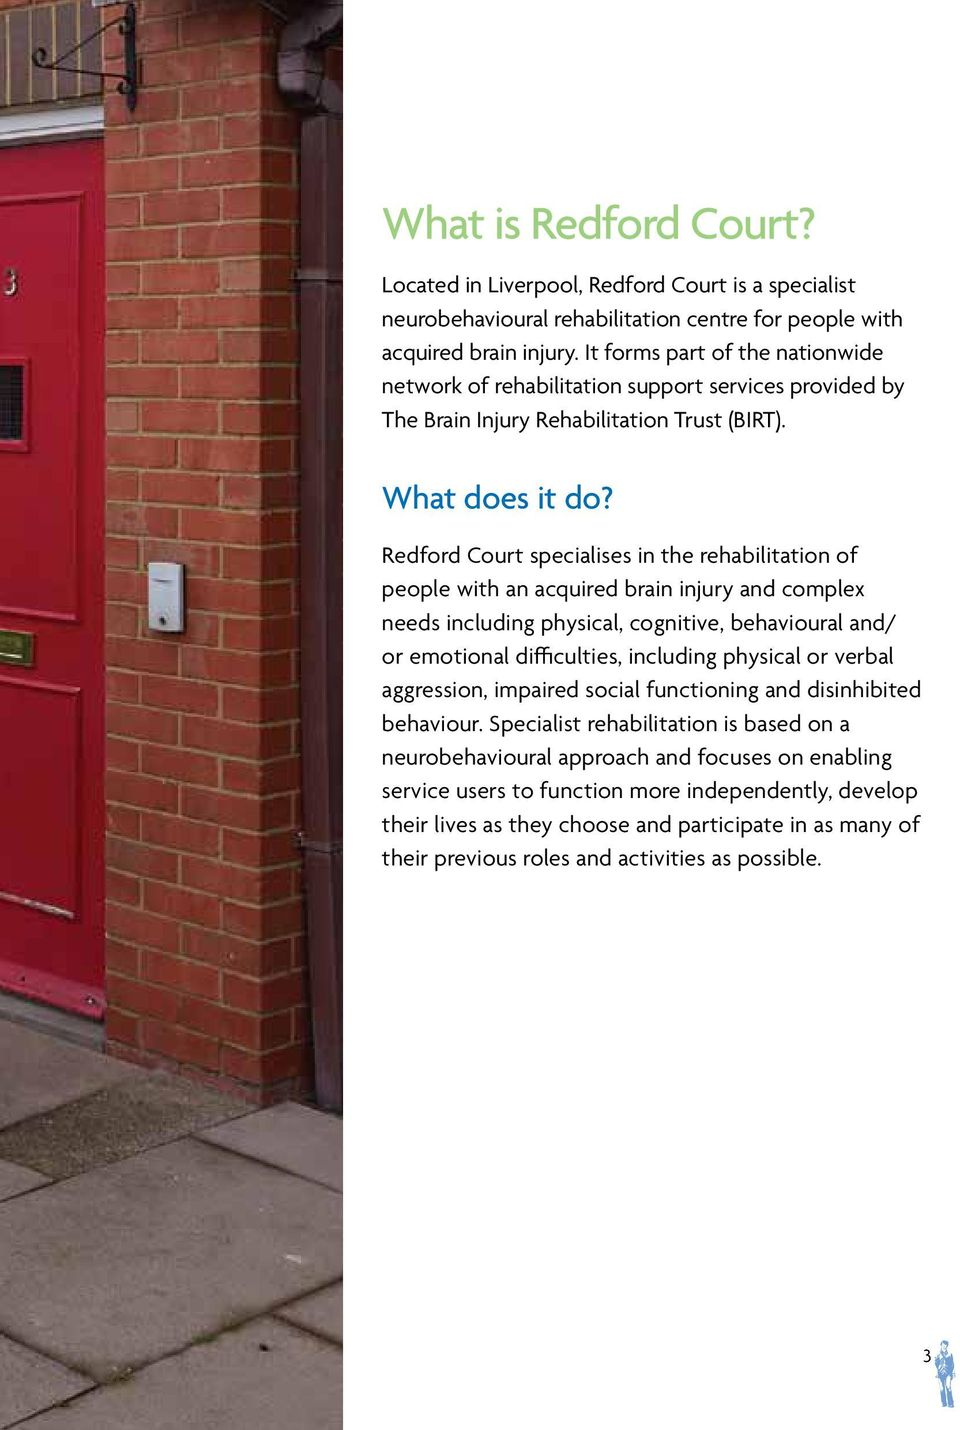 Redford Court specialises in the rehabilitation of people with an acquired brain injury and complex needs including physical, cognitive, behavioural and/ or emotional difficulties, including physical